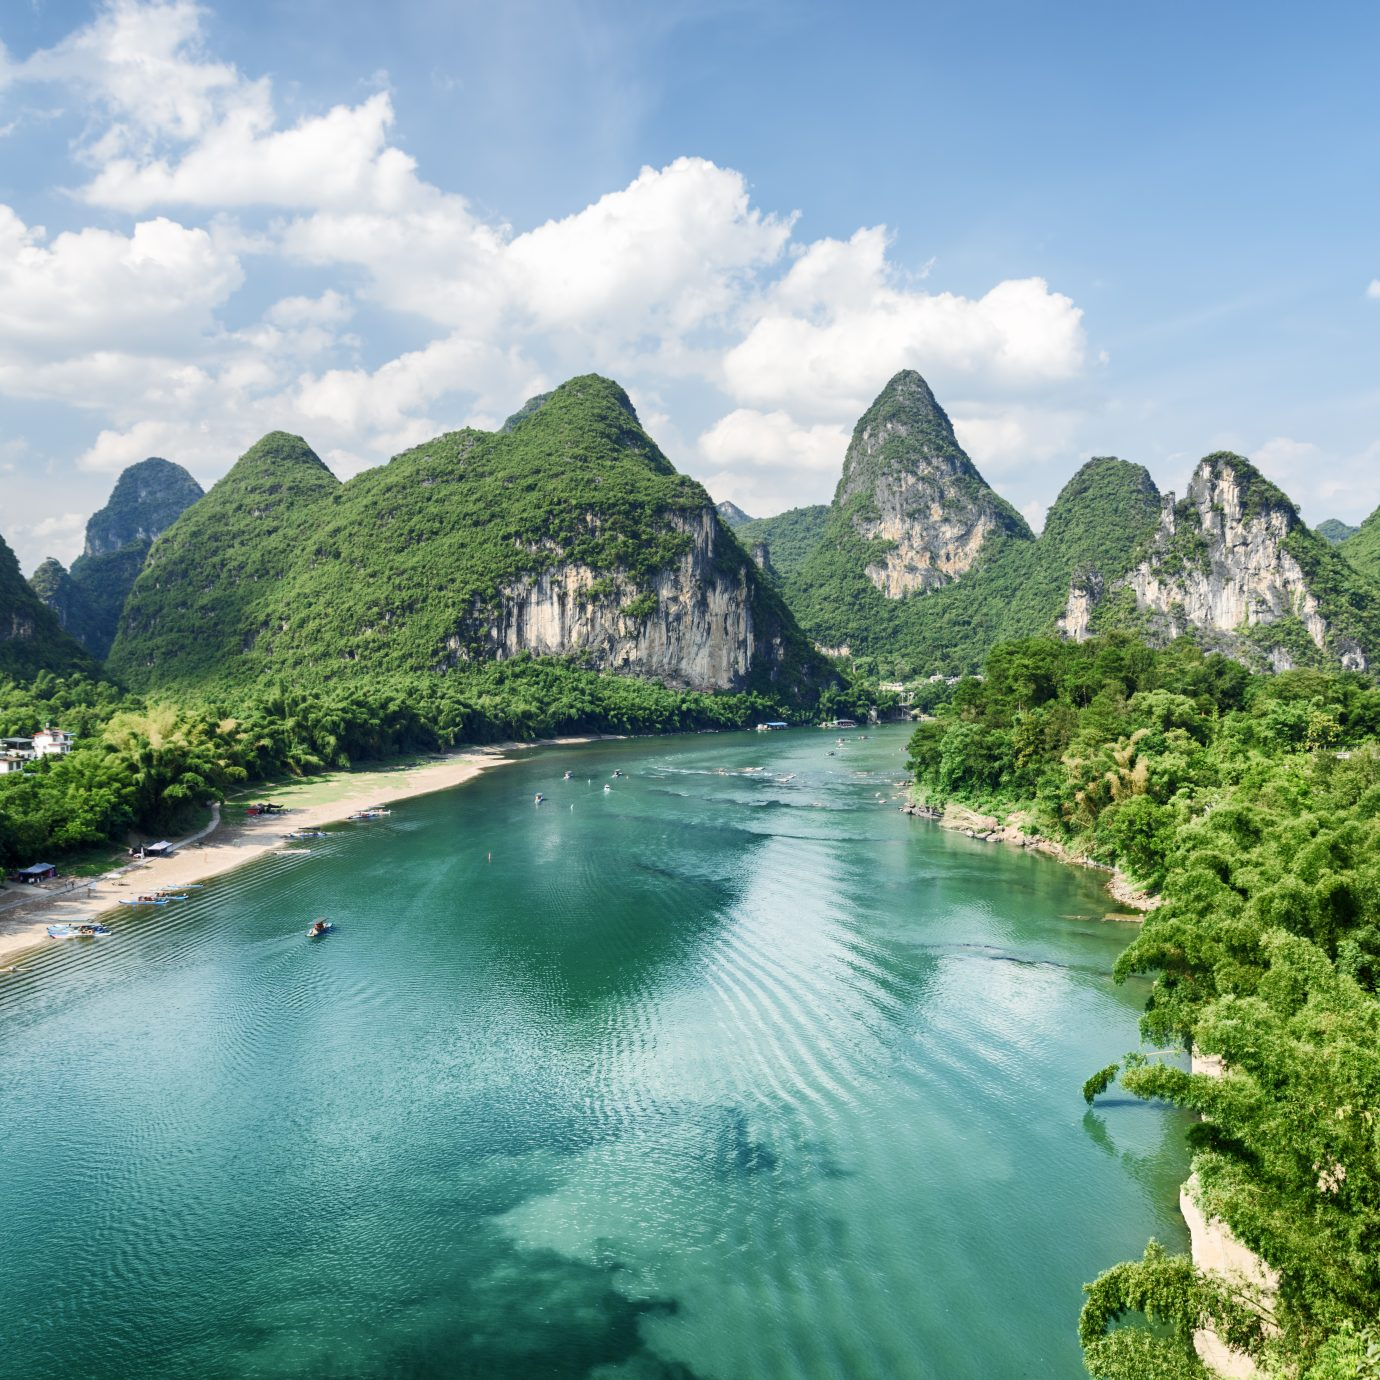 view of karst mountains and the Li River (Lijiang River)